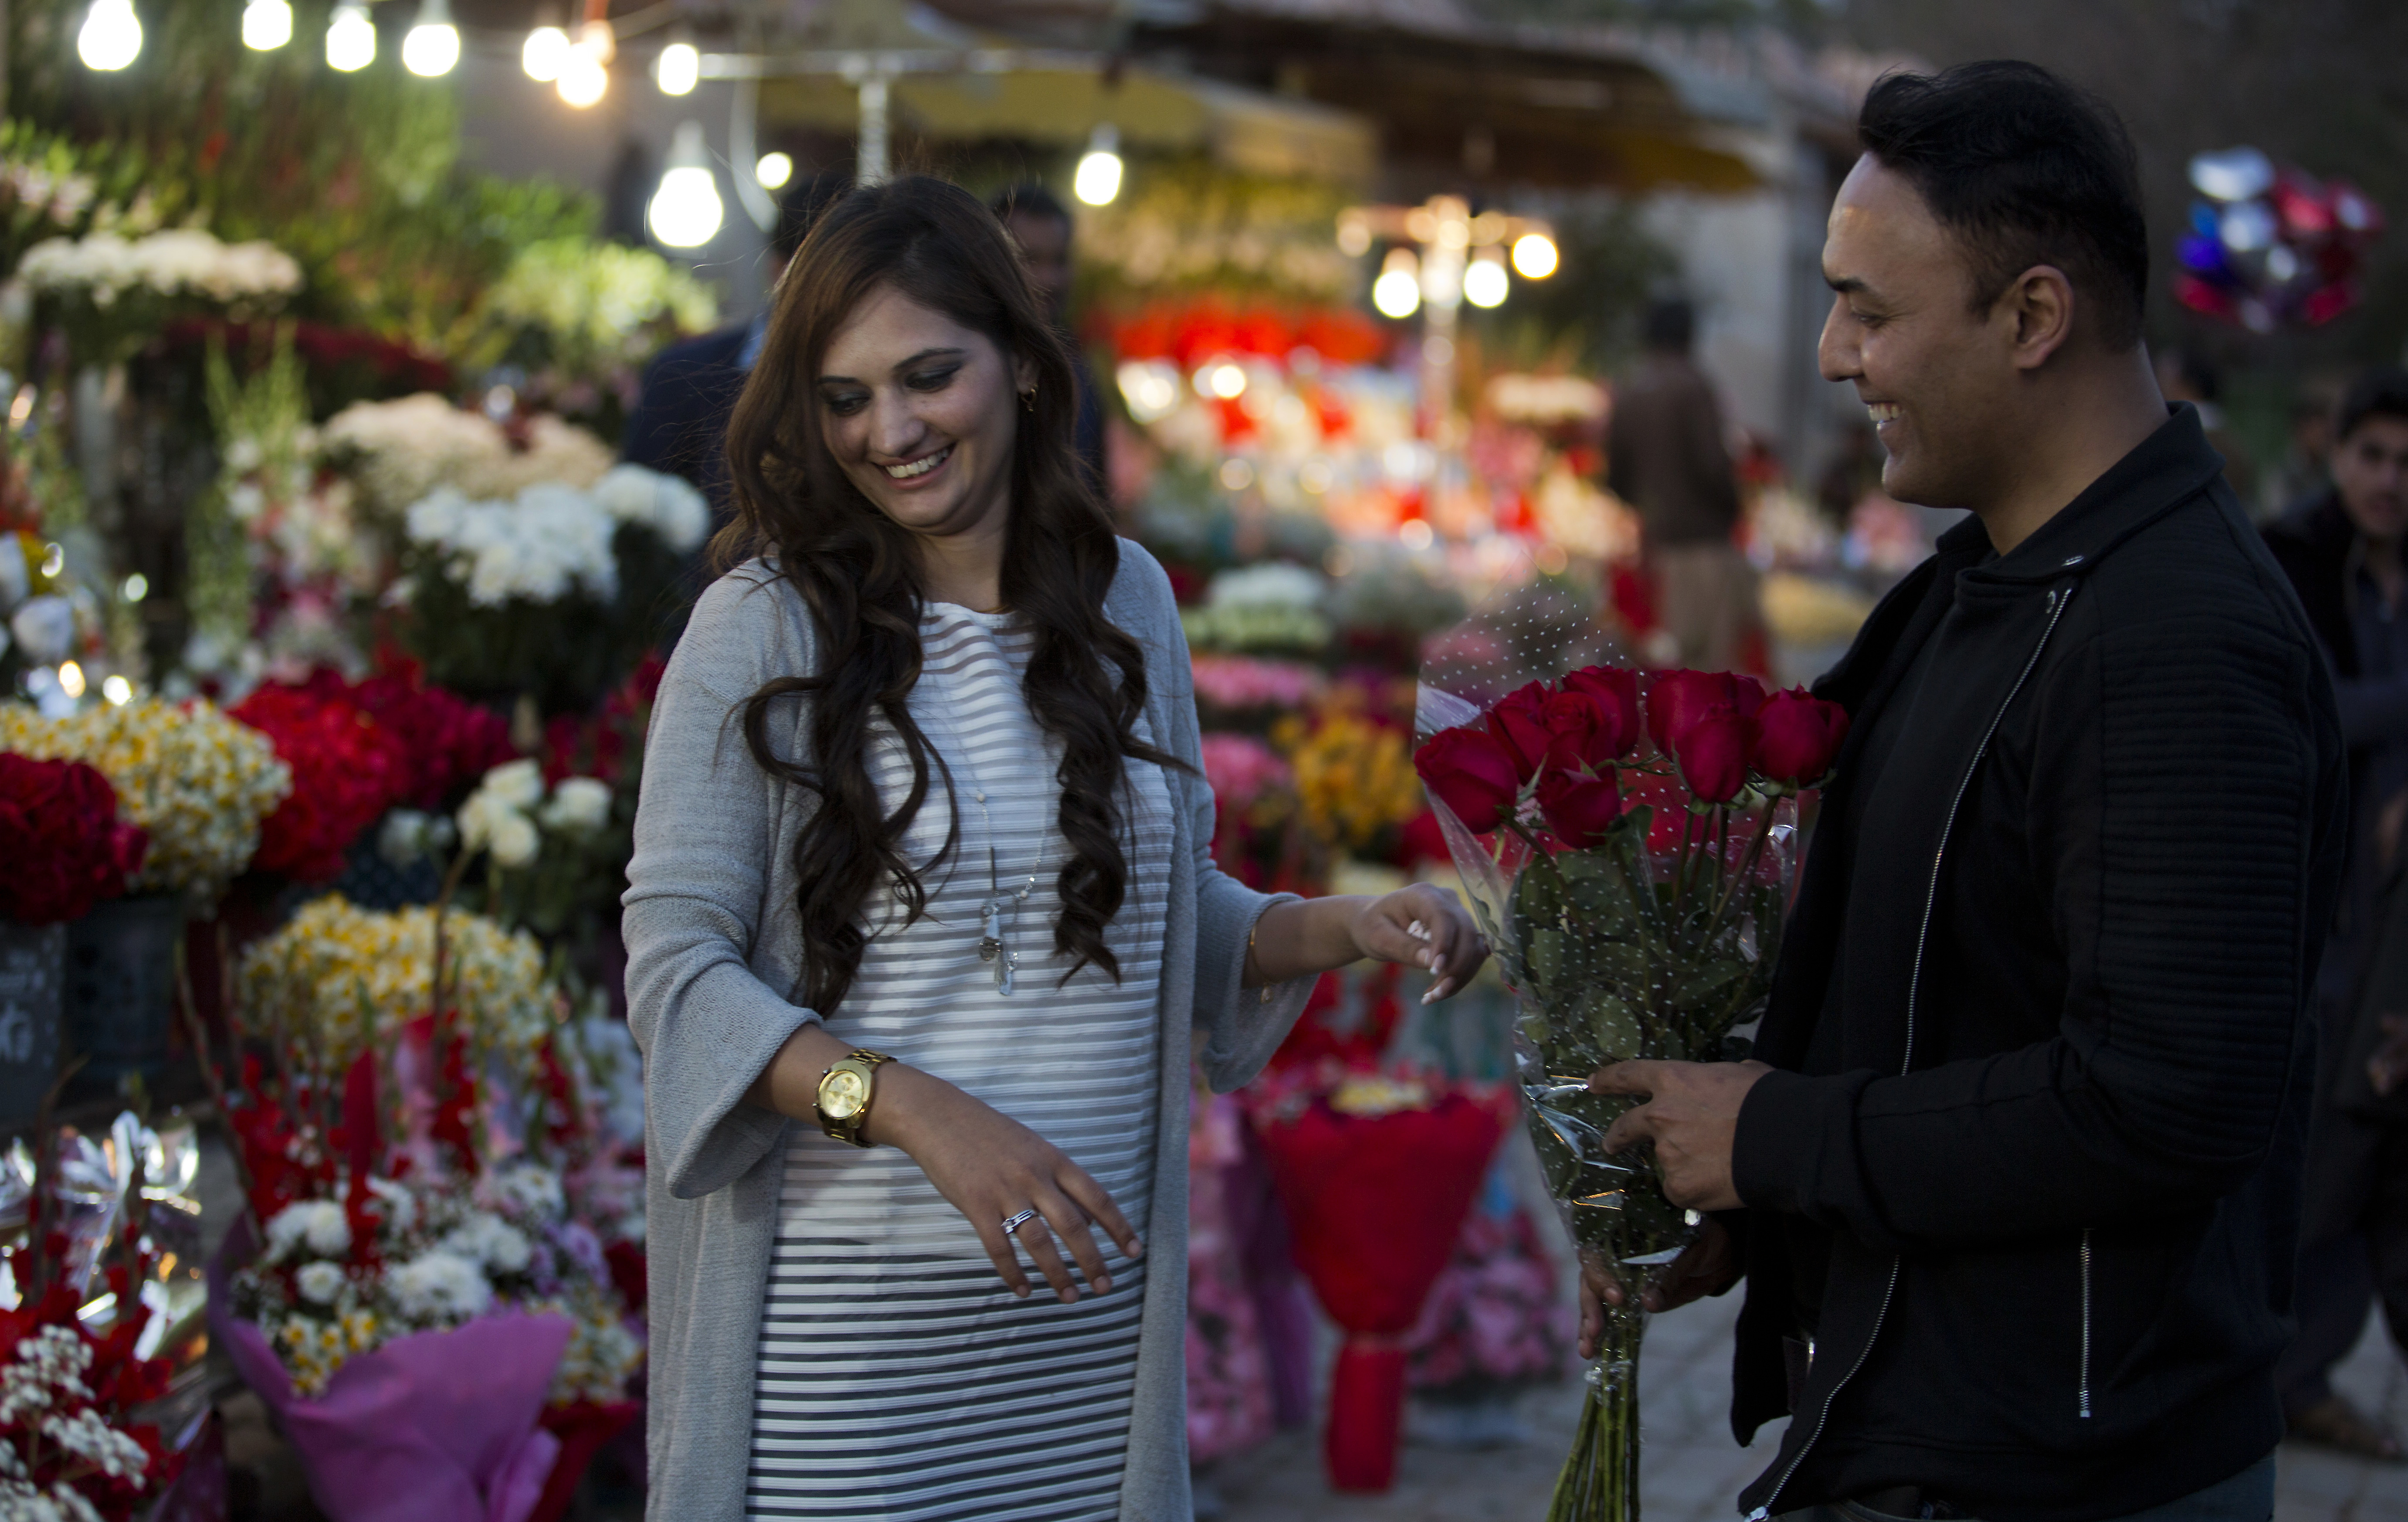 A couple buys flowers to celebrate Valentine's Day, in Islamabad, Pakistan, Feb. 13, 2017. A Pakistani judge has banned Valentine's Day celebrations in the country's capital, saying they are against Islamic teachings.